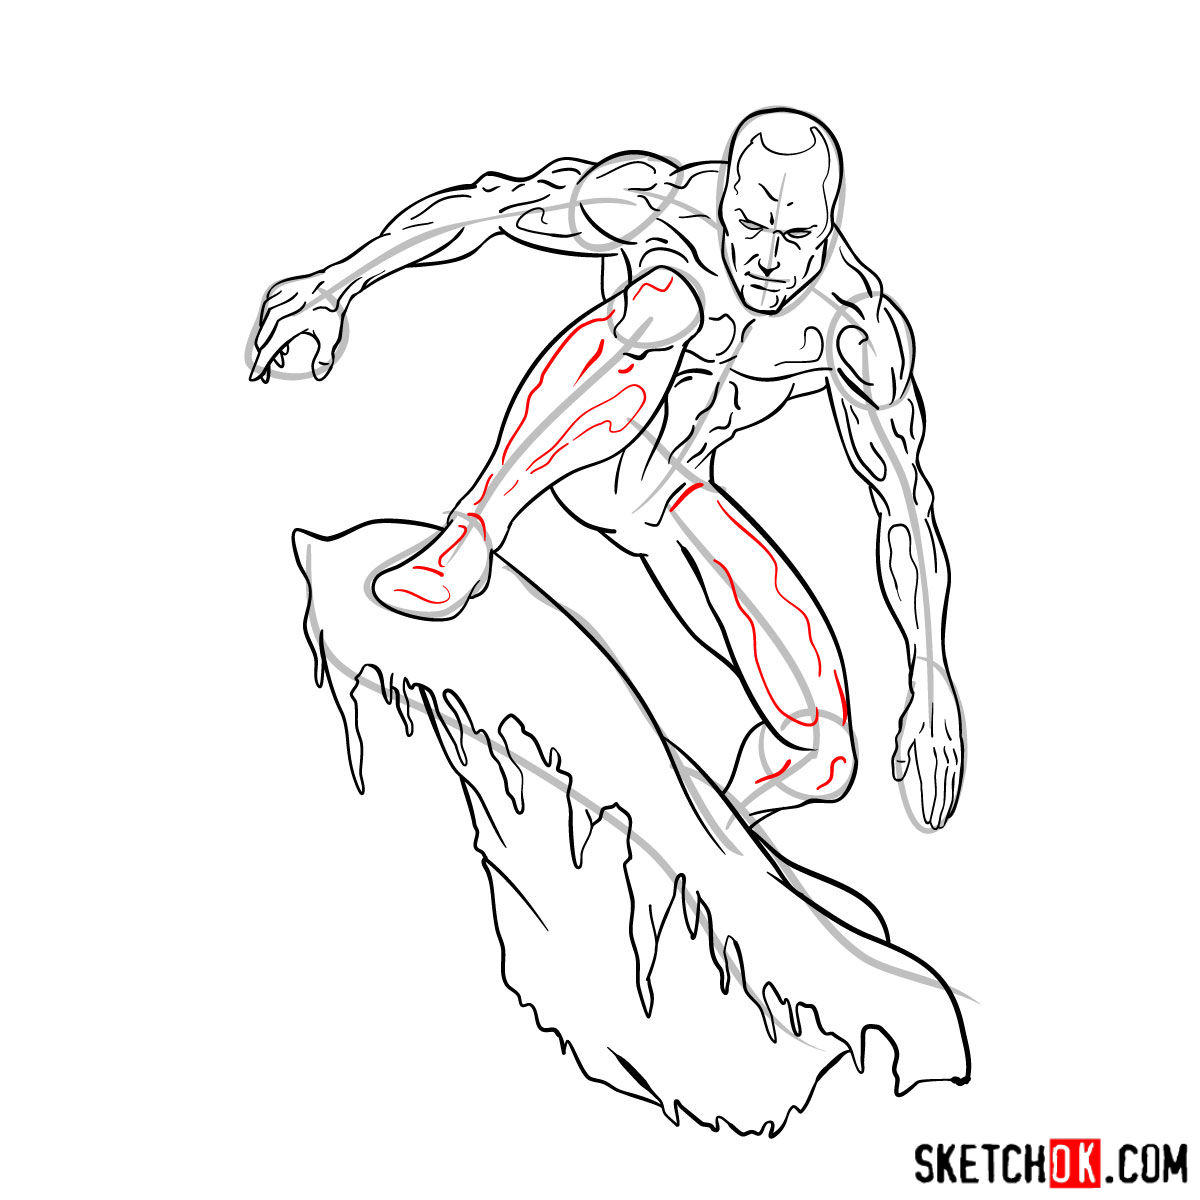 How to draw Iceman - step by step drawing tutorial - step 15